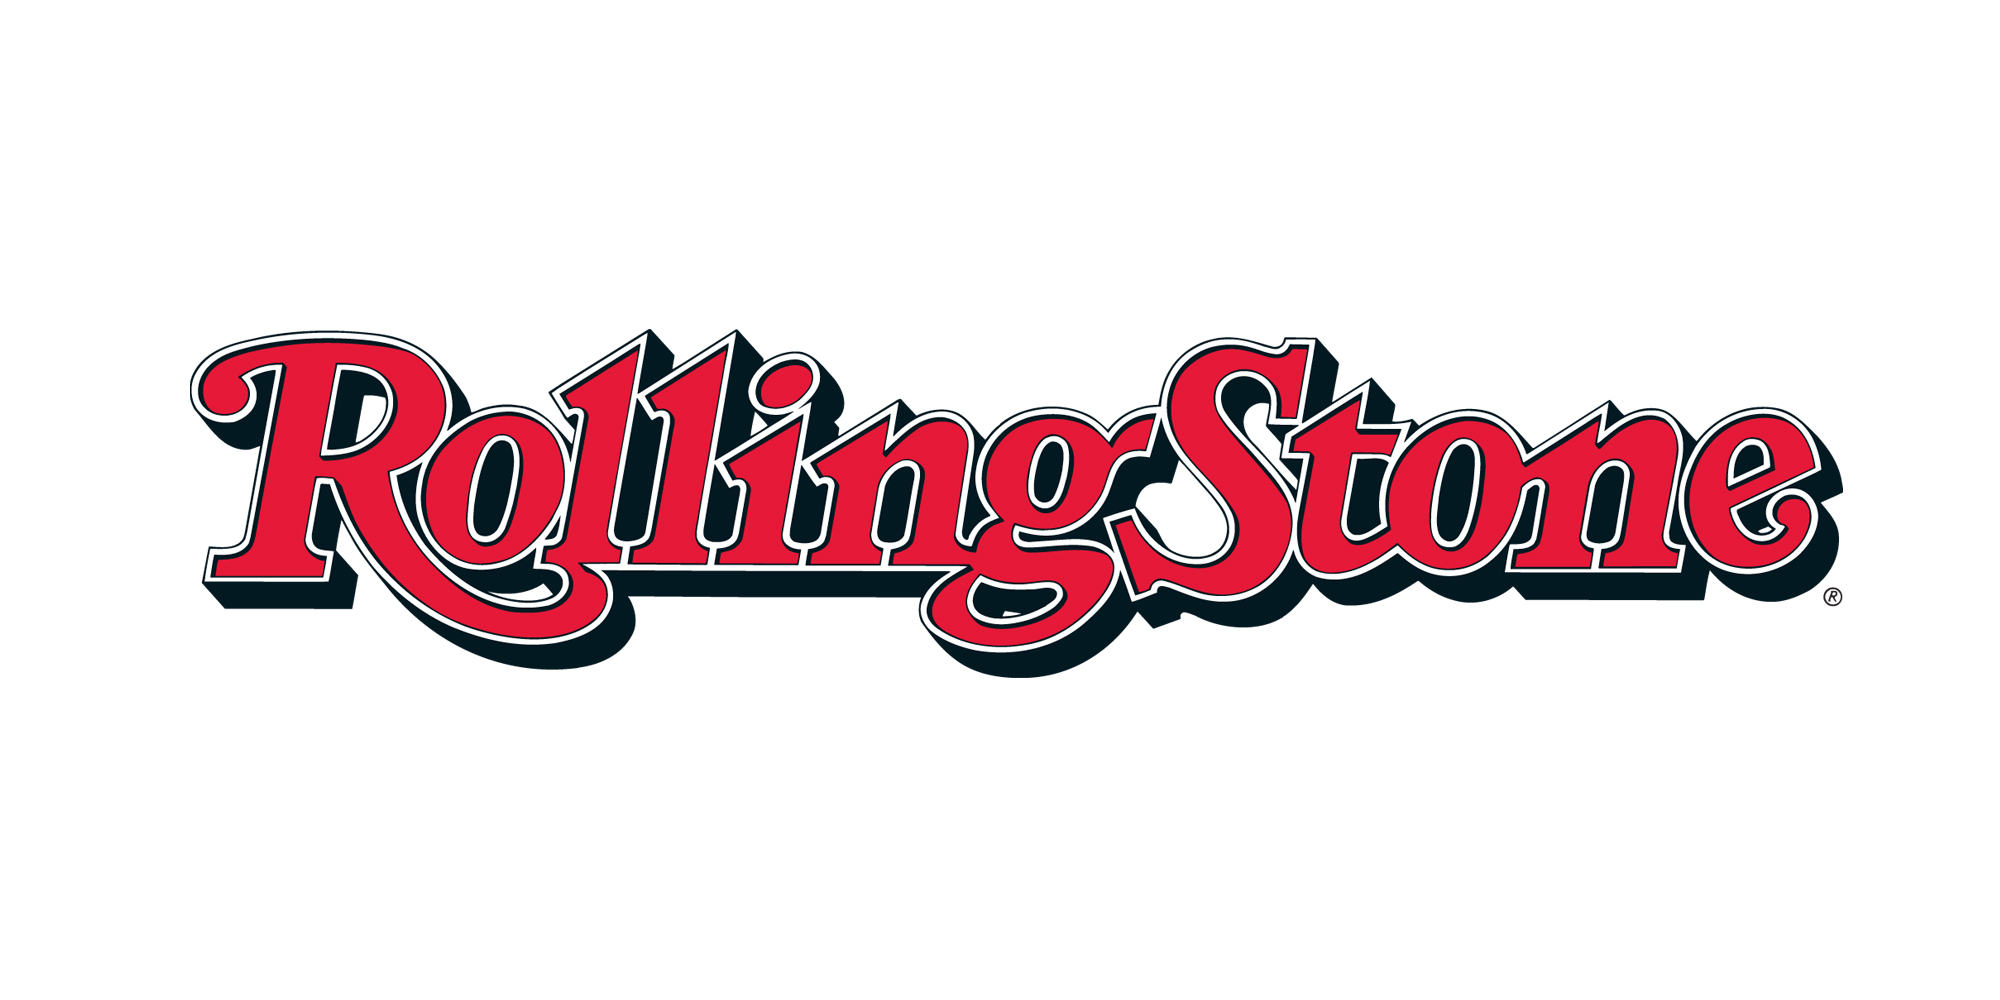 Free Rolling Stones Cliparts, Download Free Clip Art, Free.